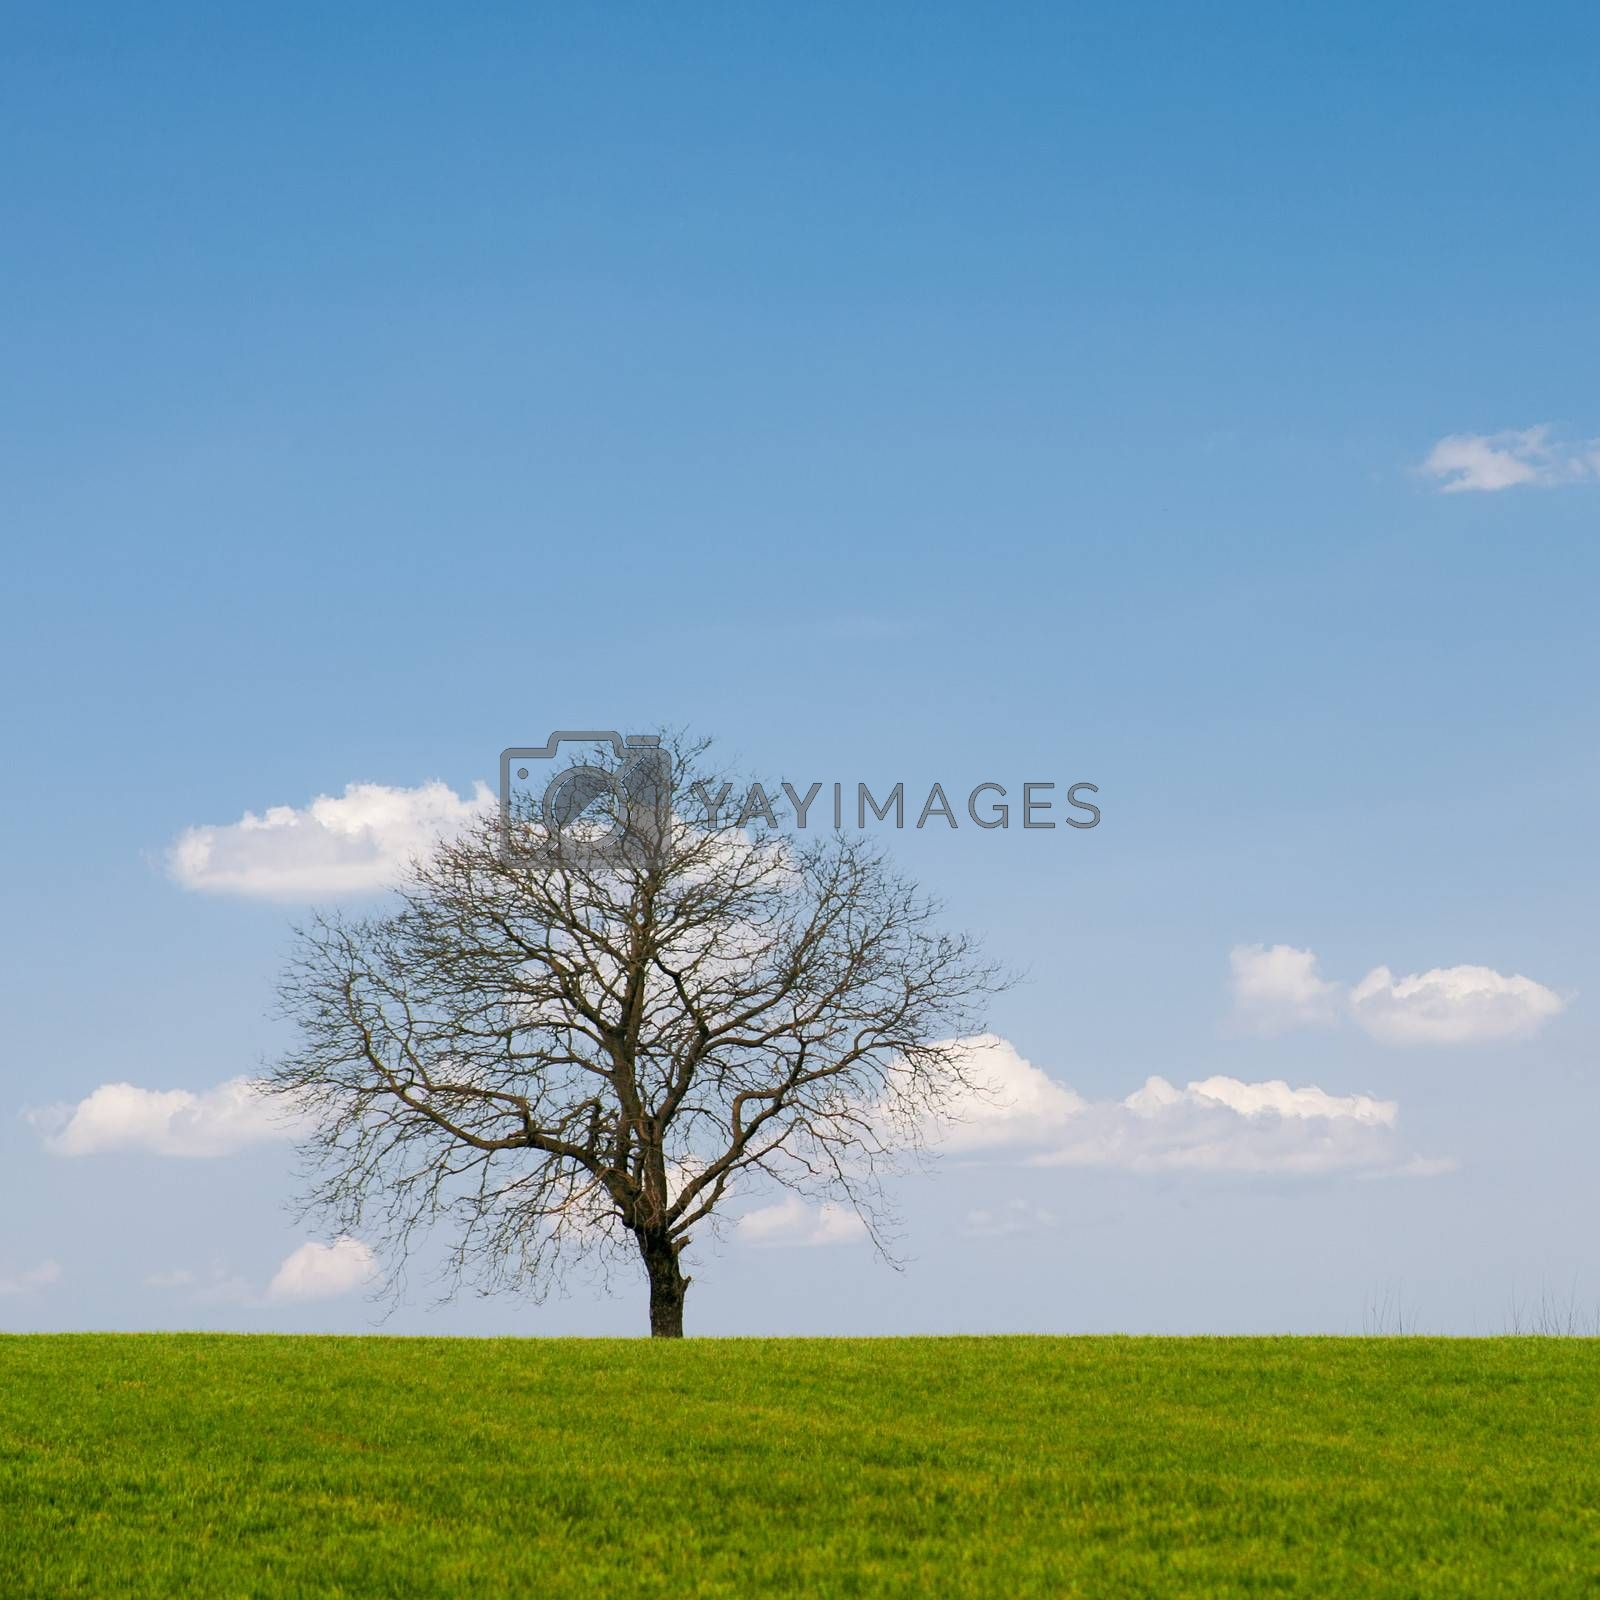 Lonely leafless tree on grass field with blue sky.